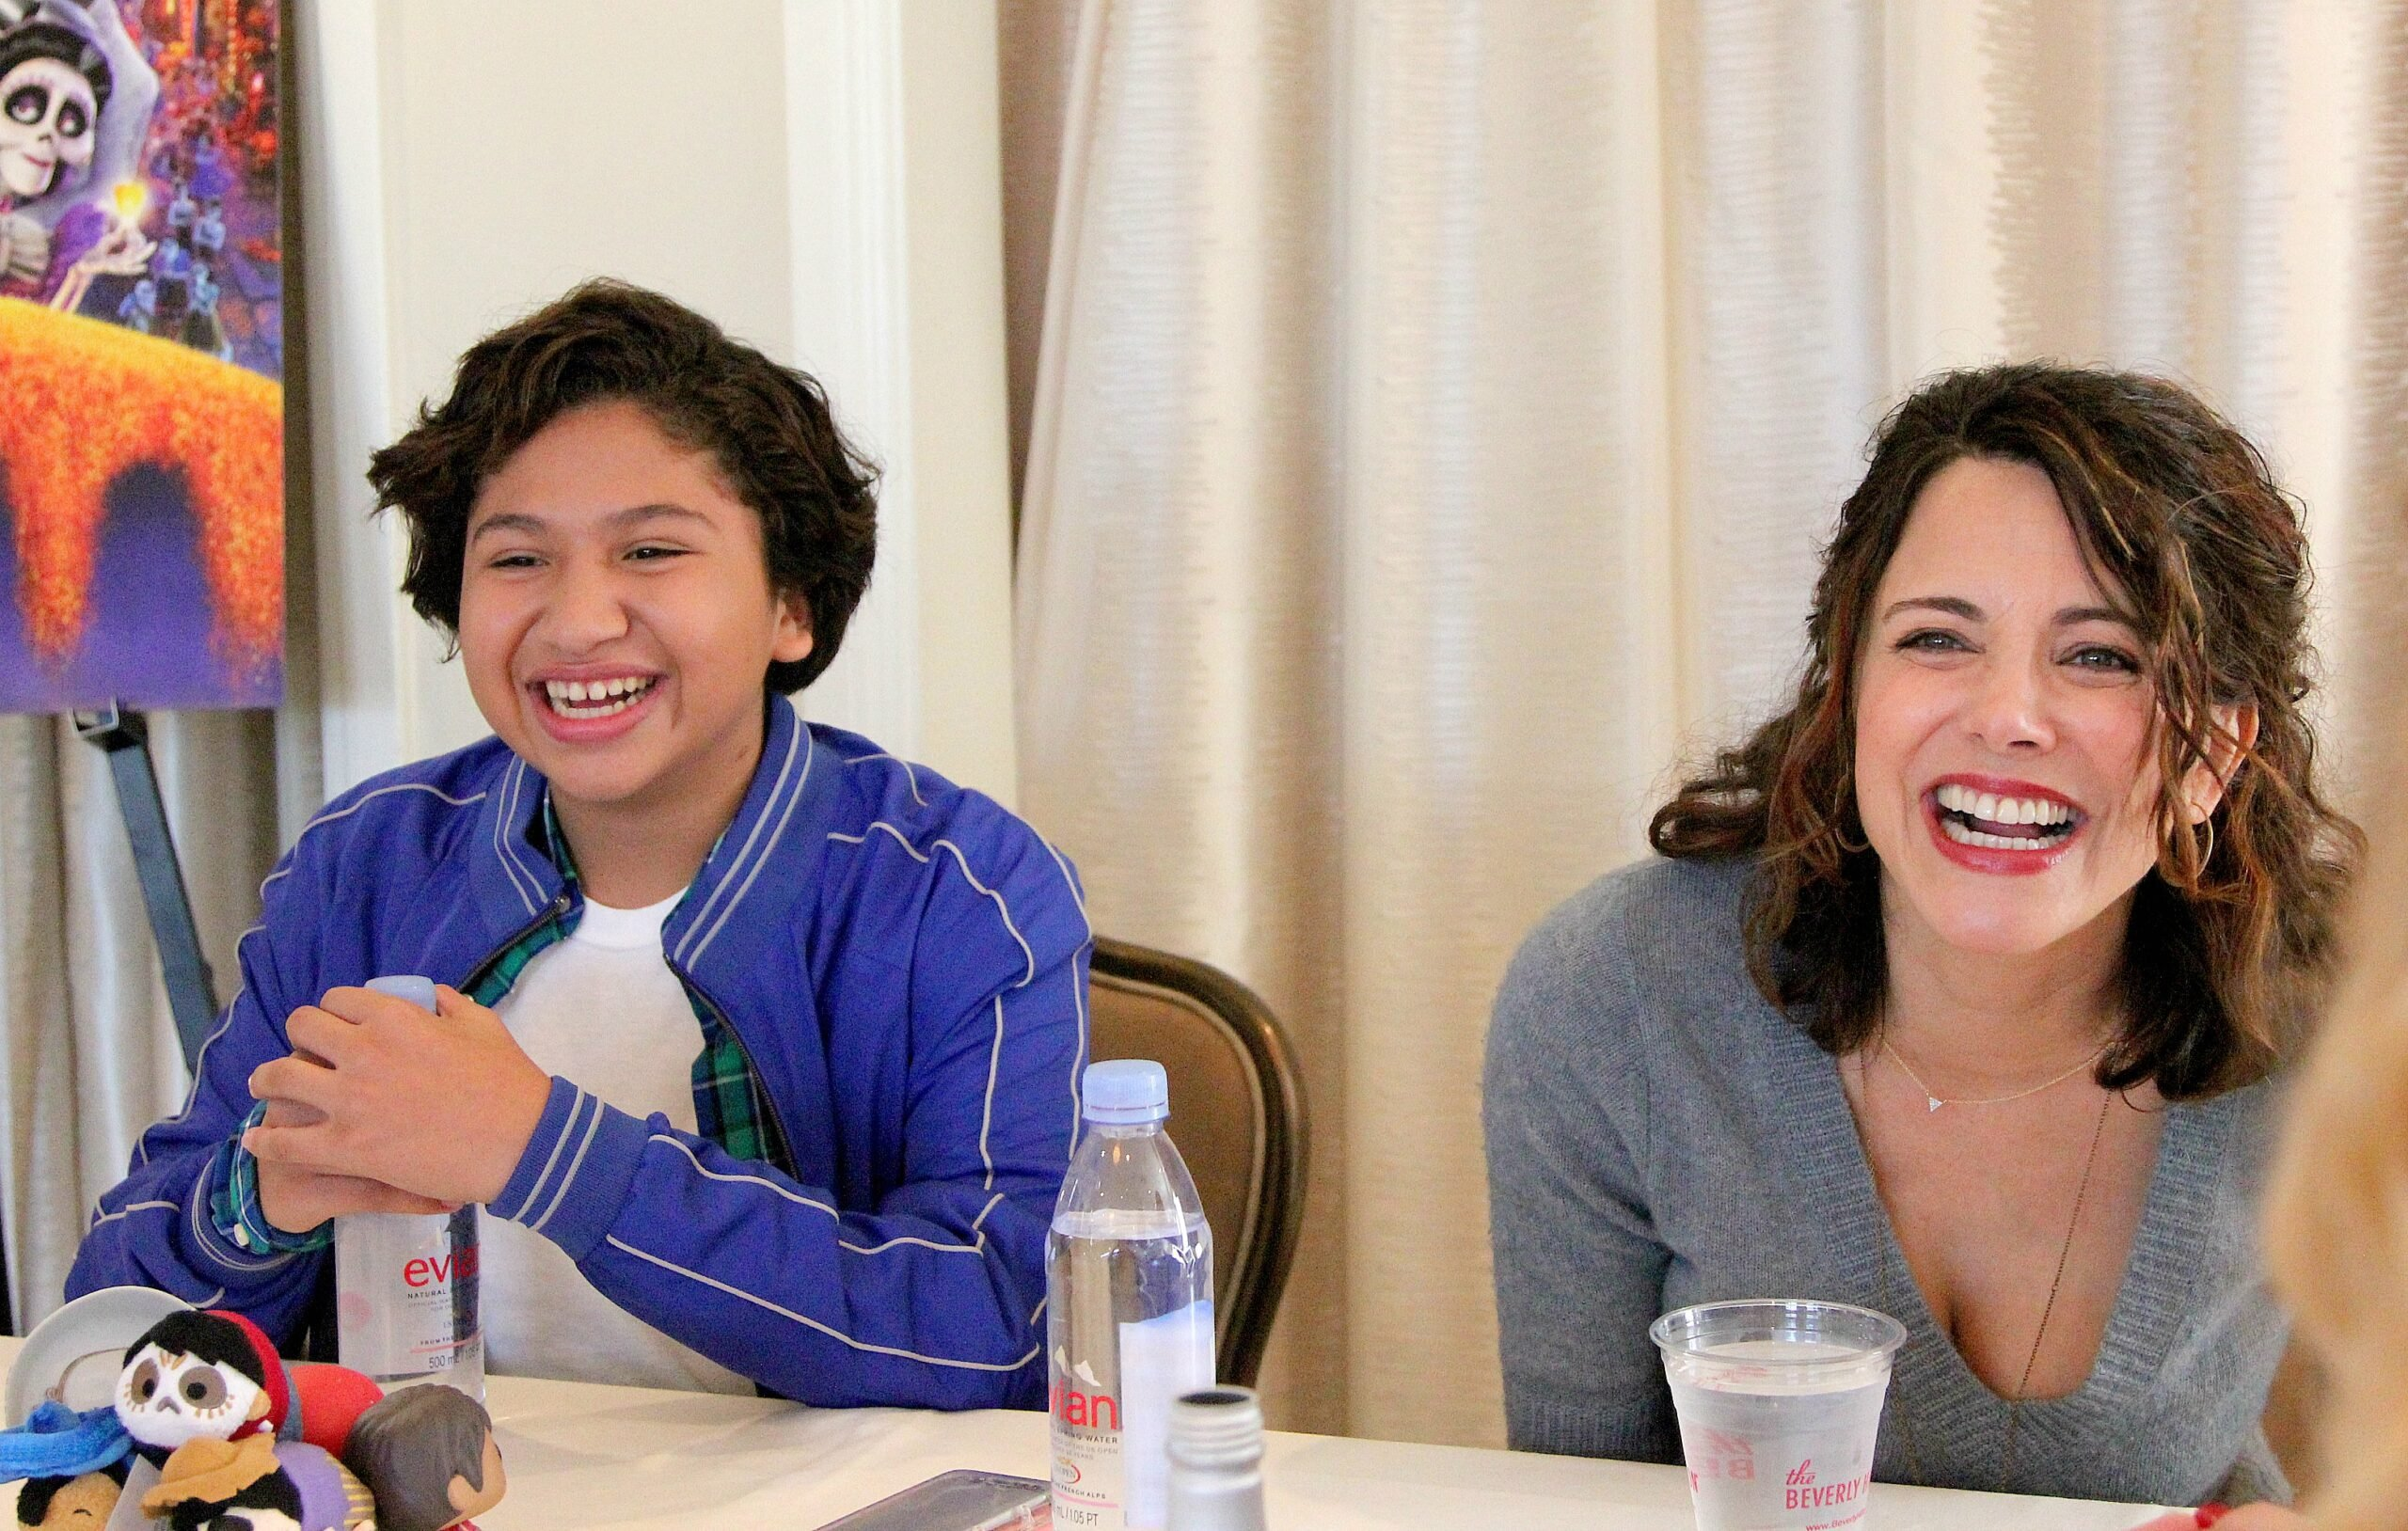 Exclusive Interview With Anthony Gonzalez (Voice of Miguel) and Alanna Ubach (Voice of Mama Imelda) in Disney Pixars COCO